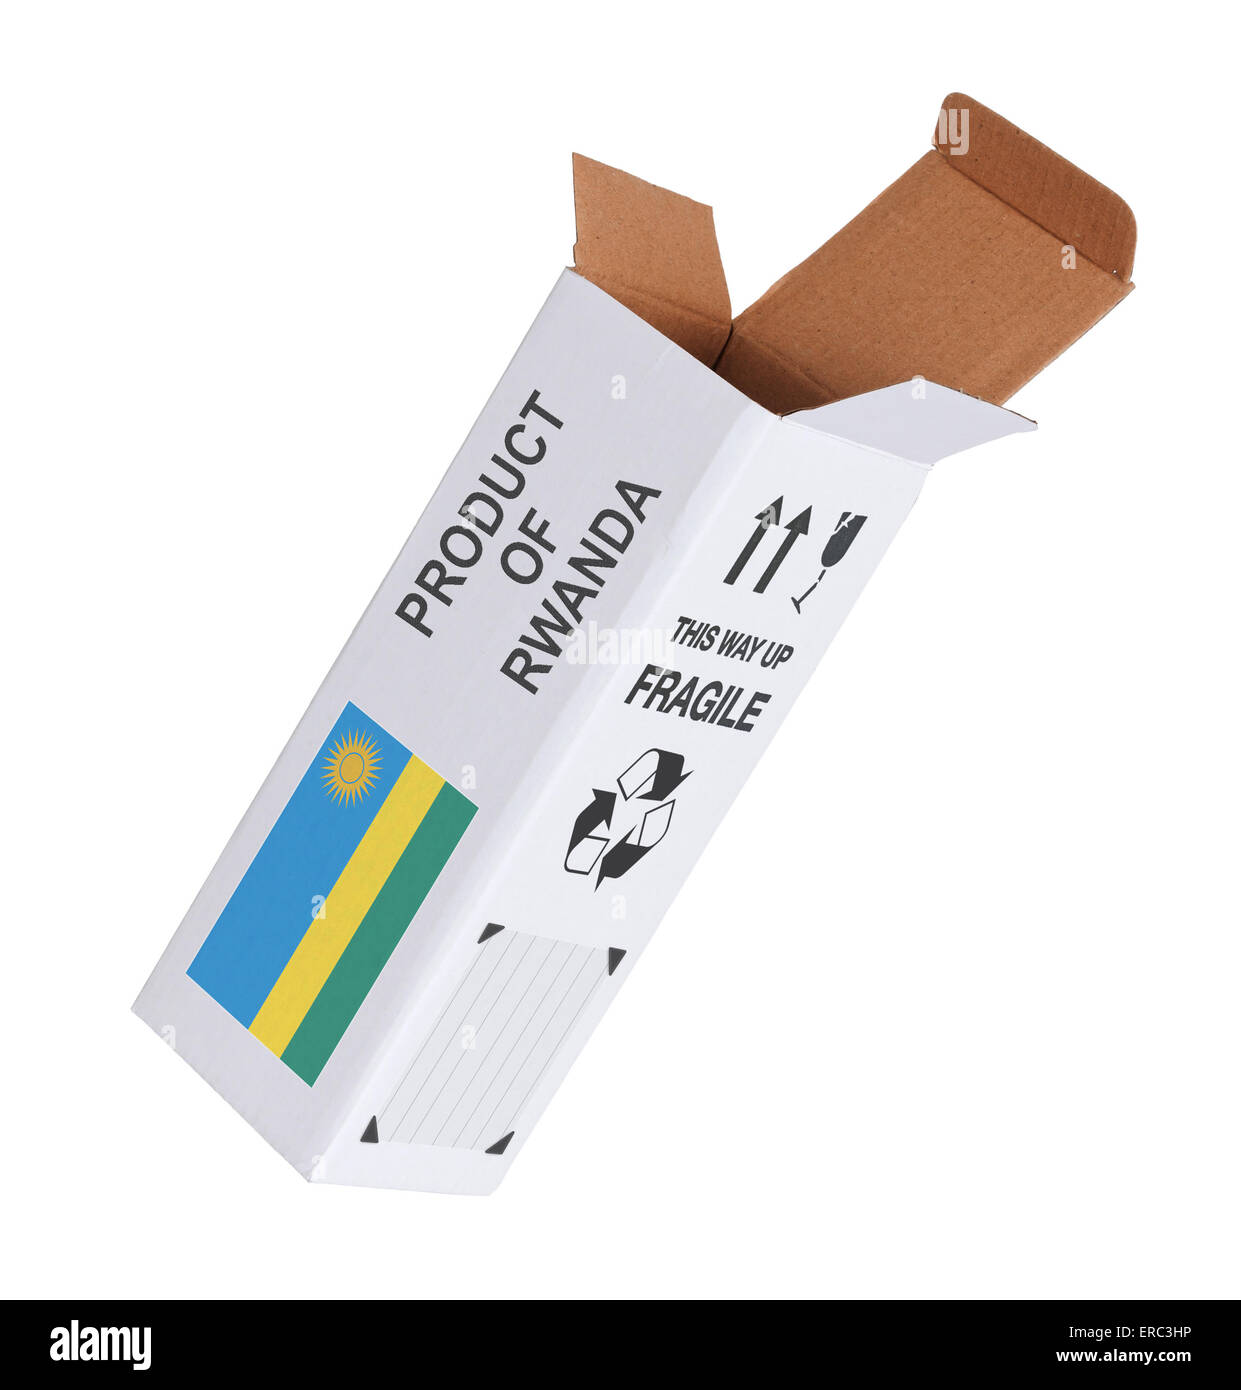 Concept of export, opened paper box - Product of Rwanda - Stock Image